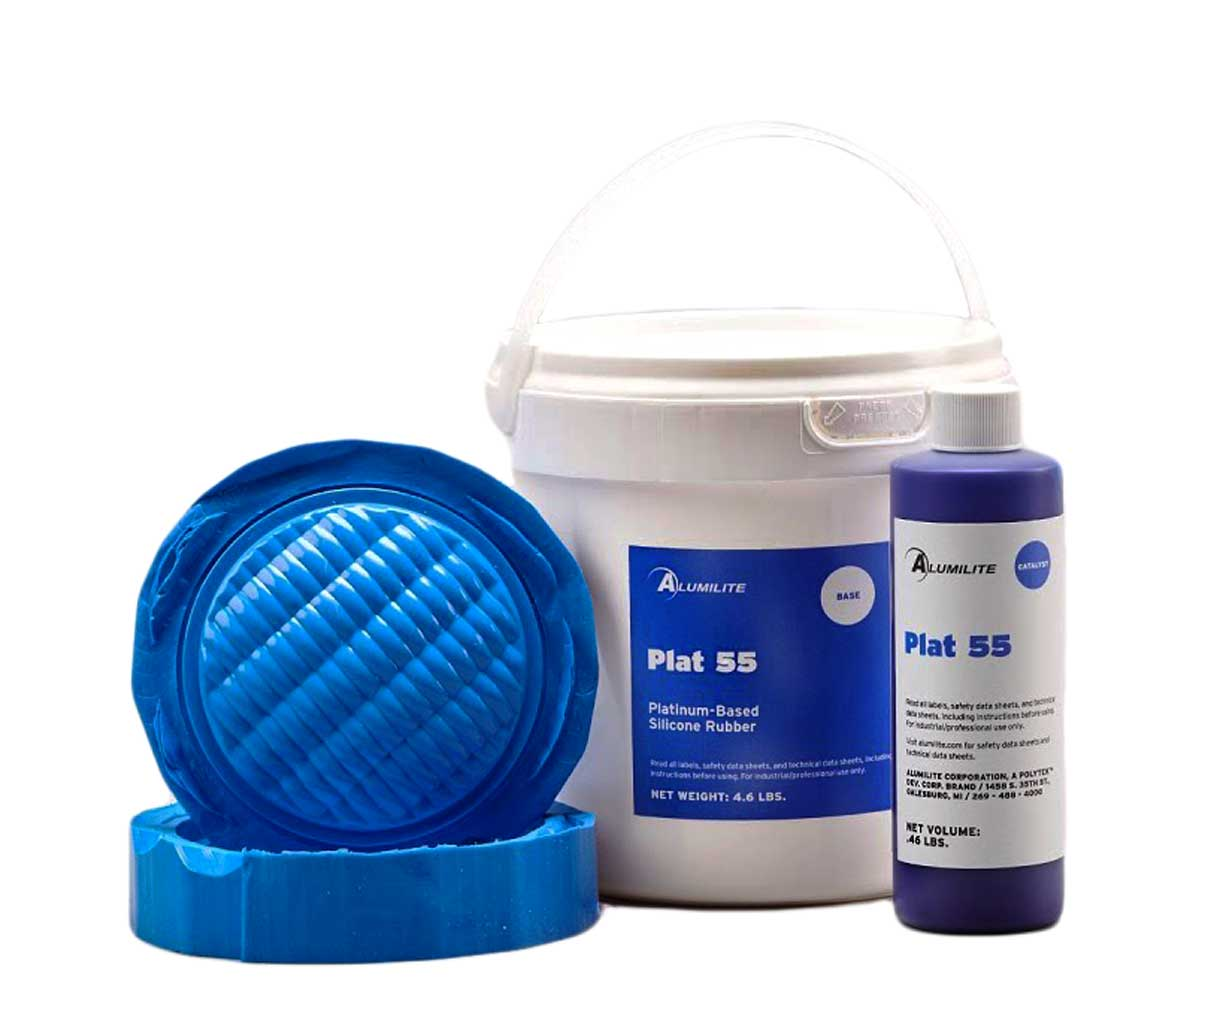 Silicone Rubber Mold Making Kit